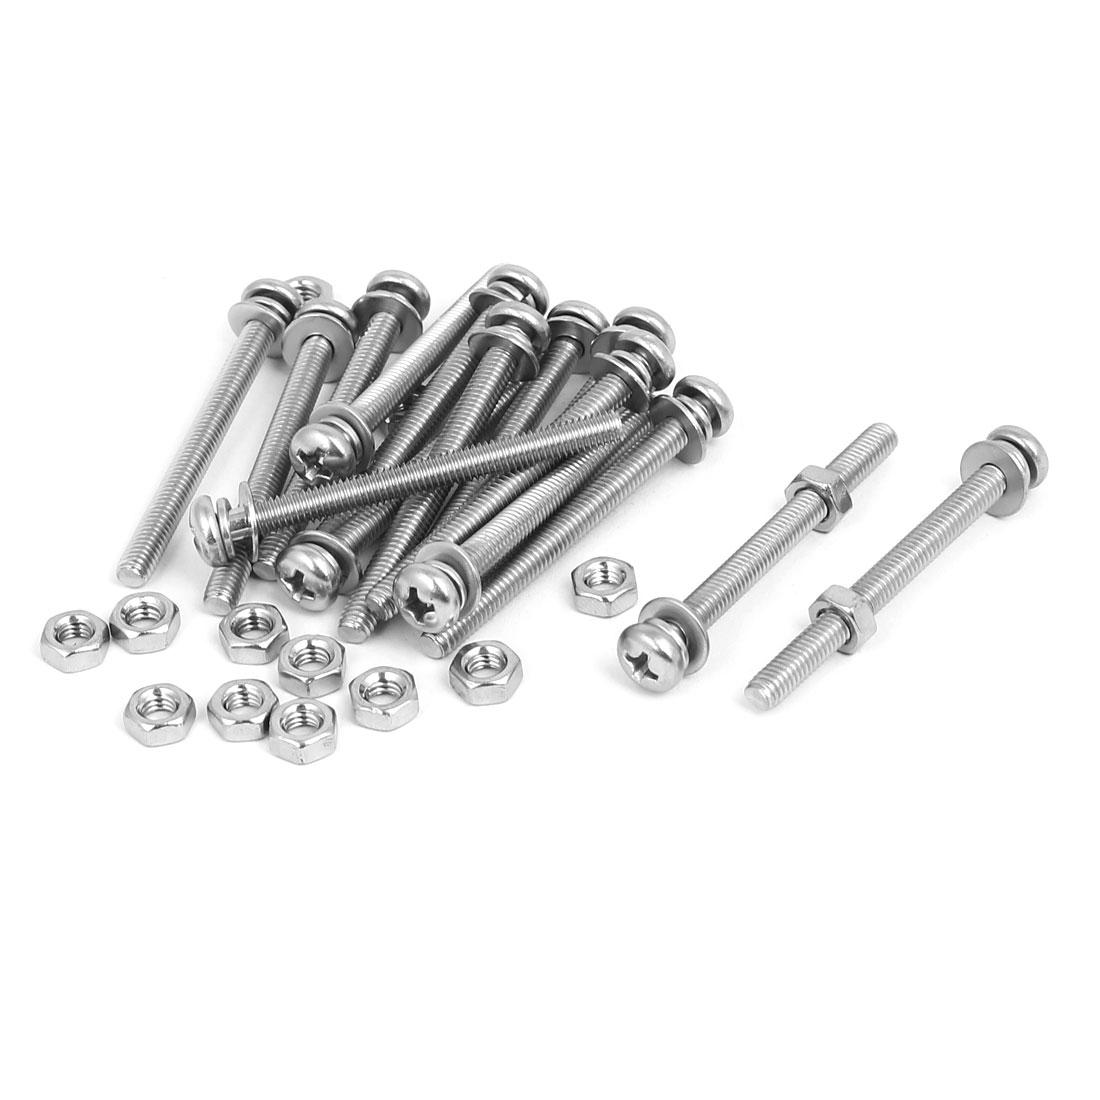 M4 x 45mm 304 Stainless Steel Phillips Pan Head Screws Nuts w Washers 15 Sets